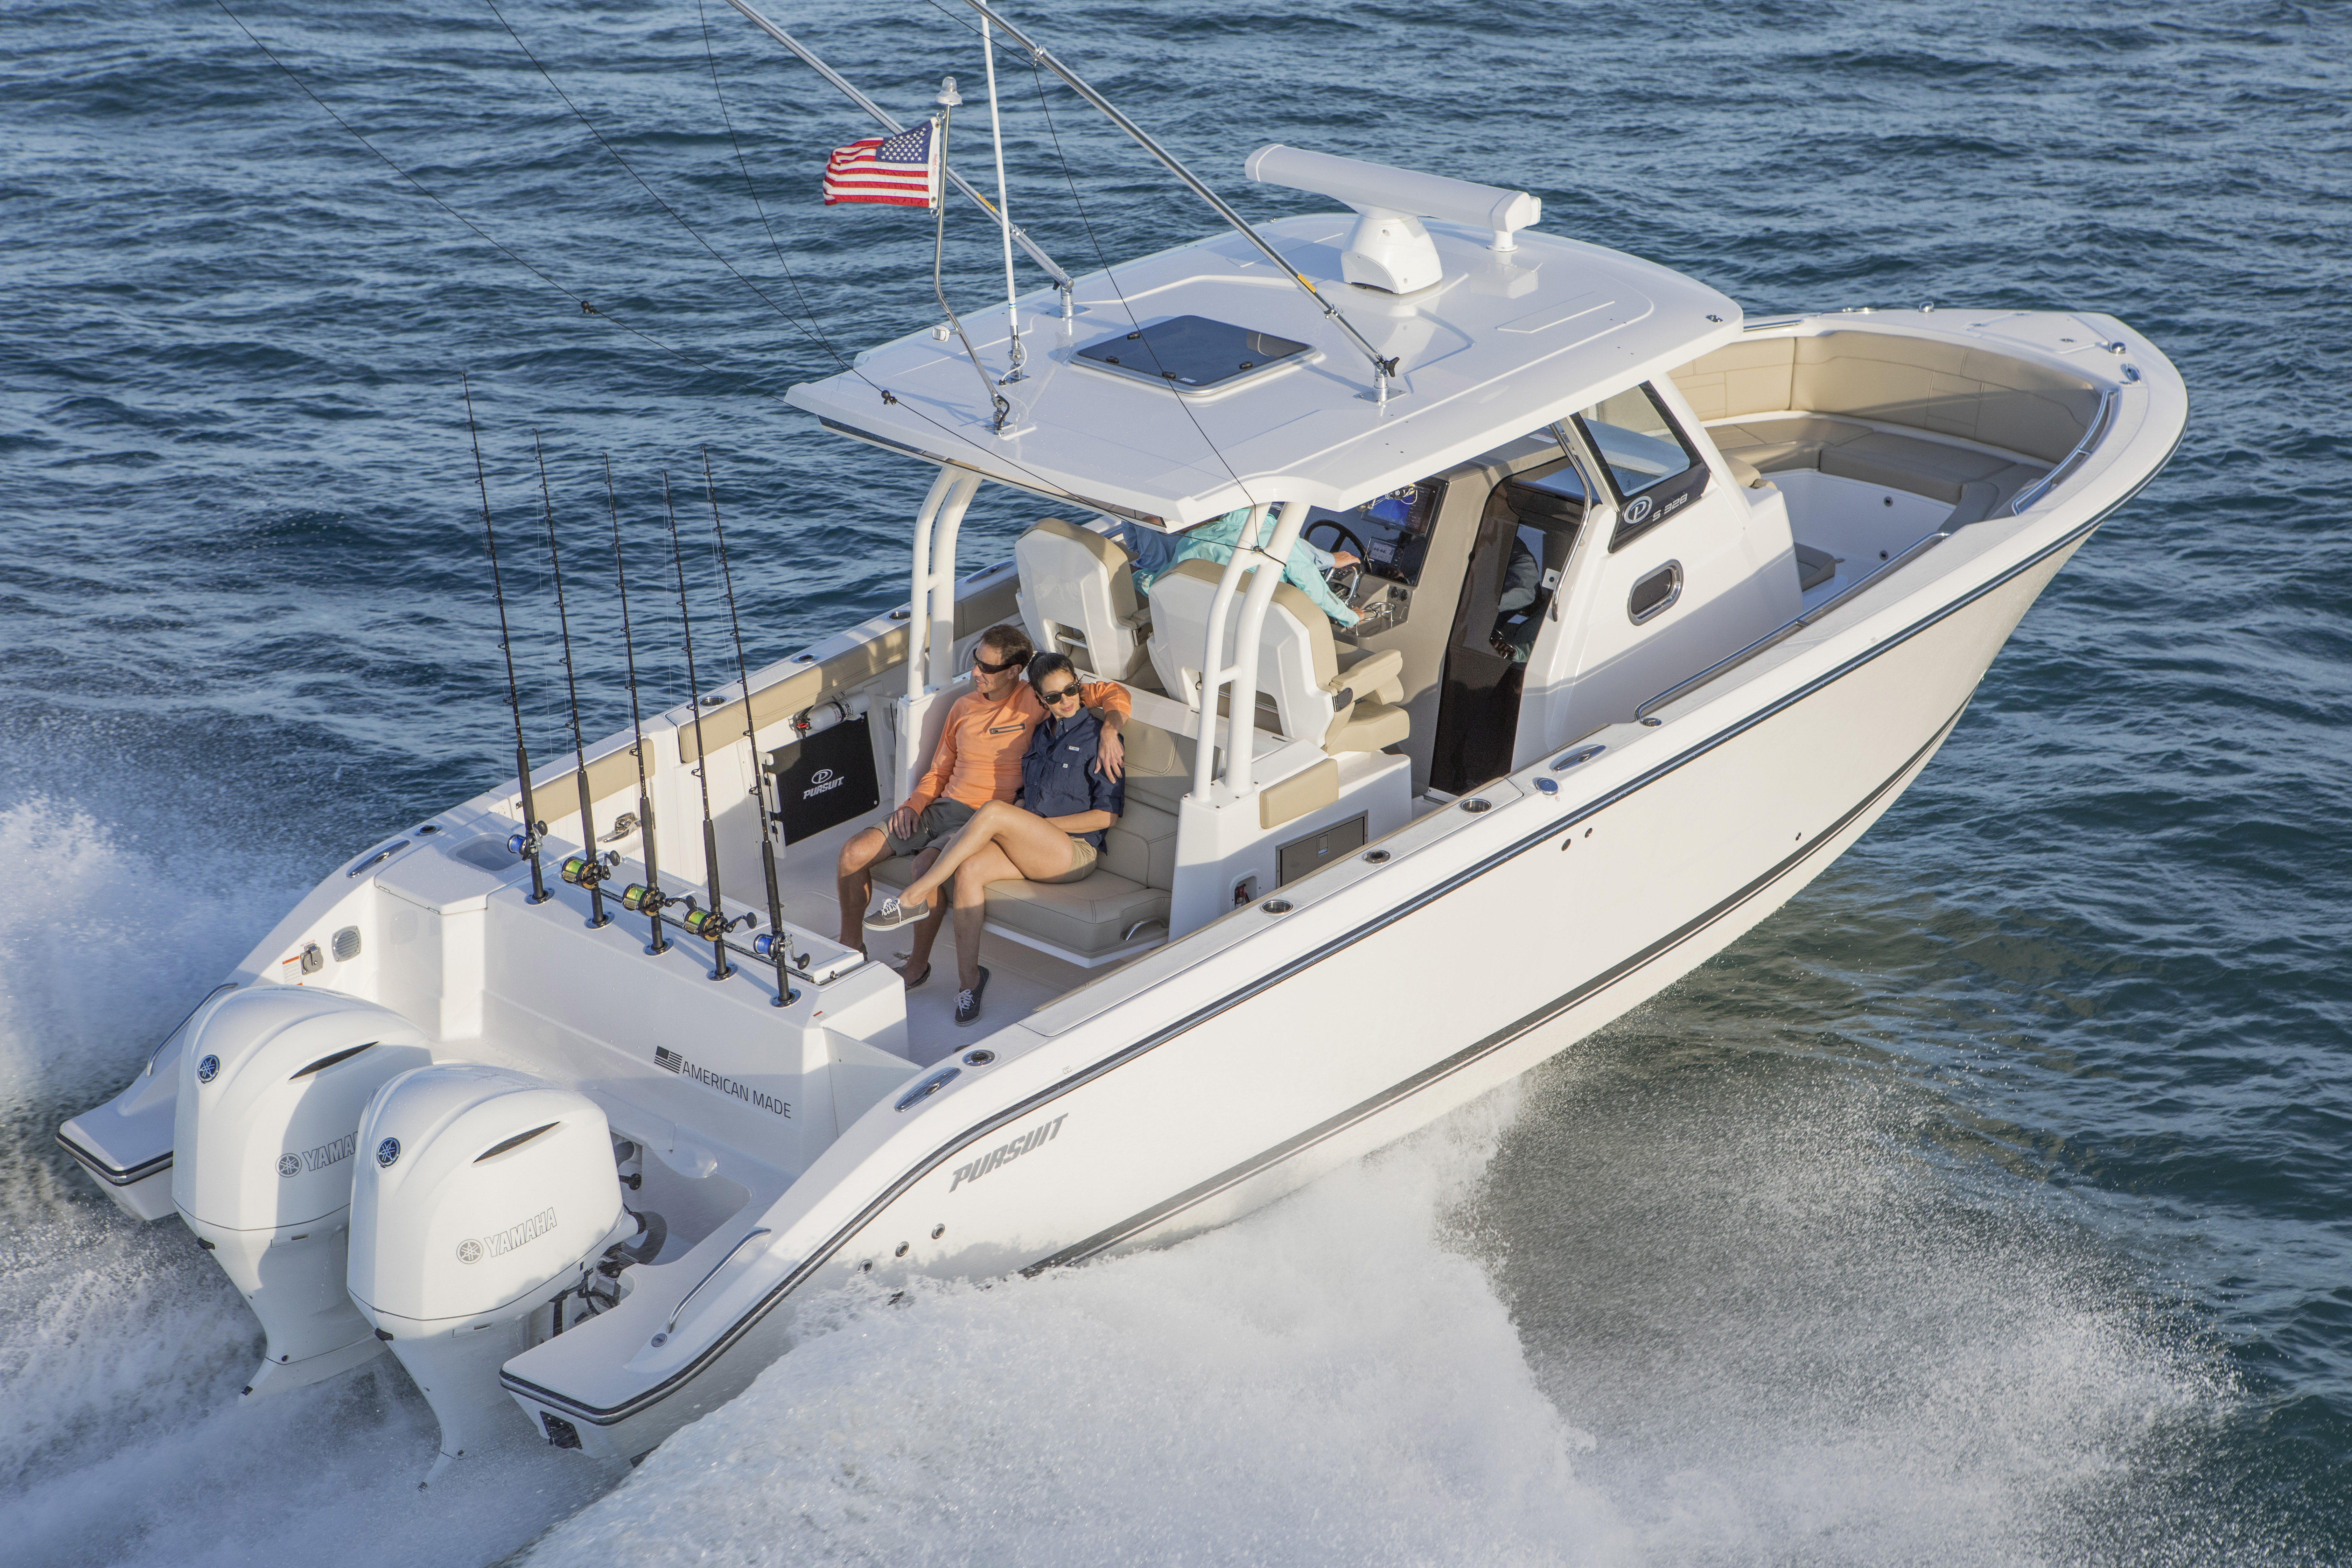 Boat Review: Pursuit S 328 - SHORE Magazine - Boating Lake